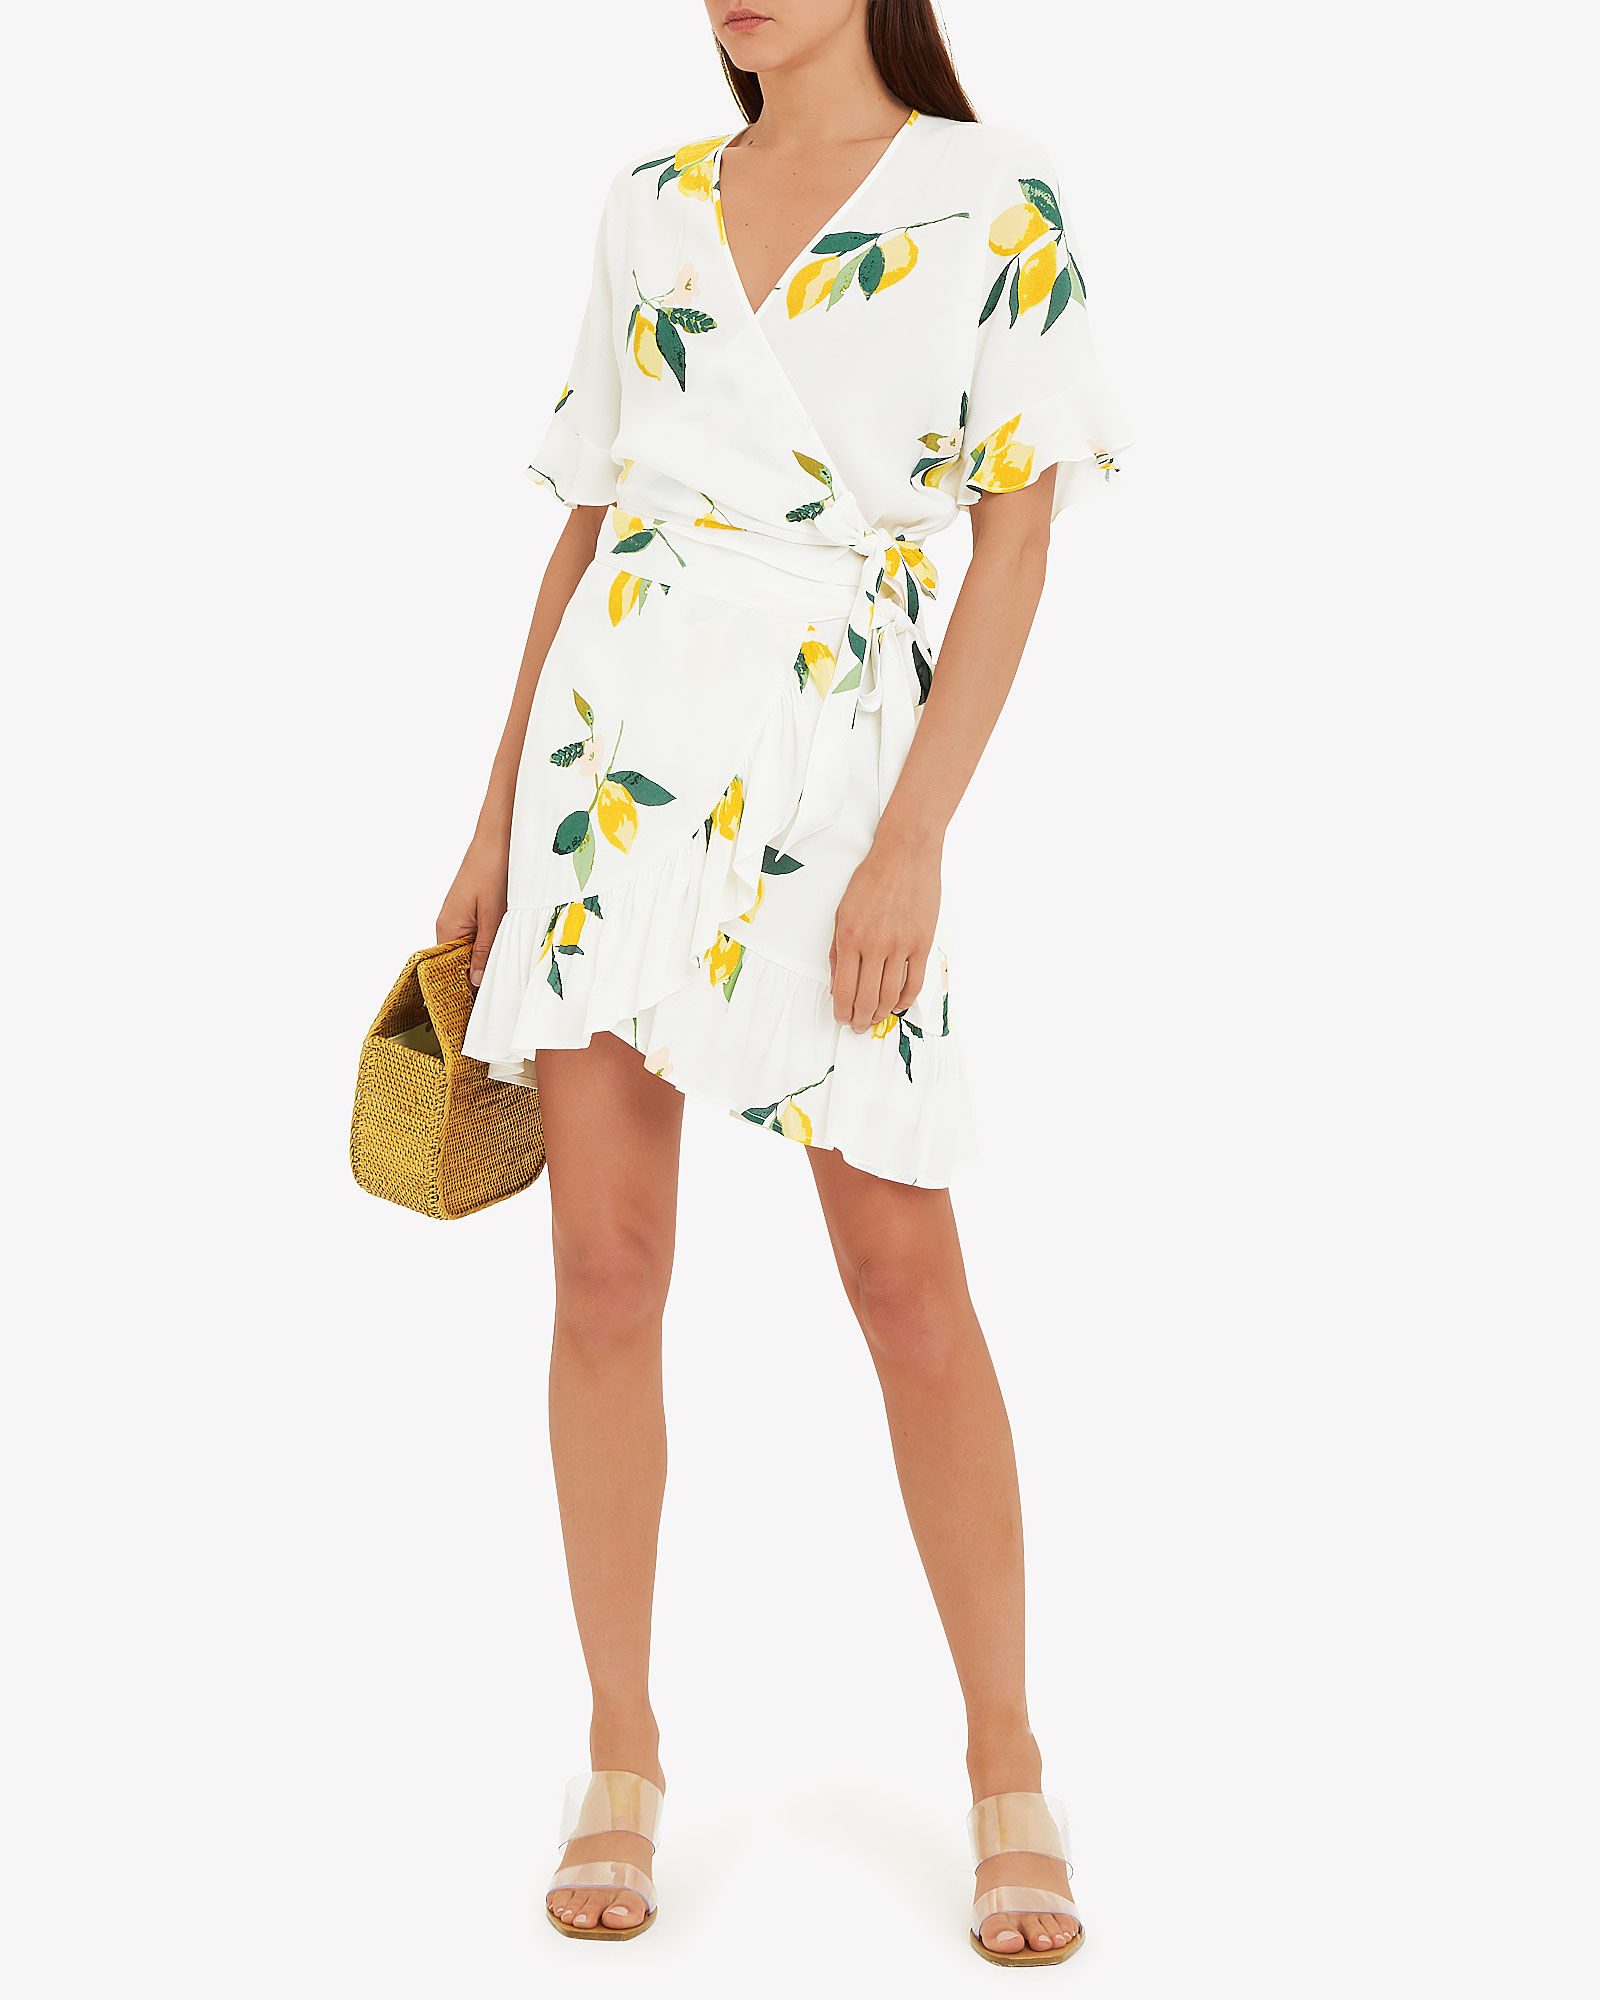 Eienne Lemon Wrap Skirt, WHITE, hi-res